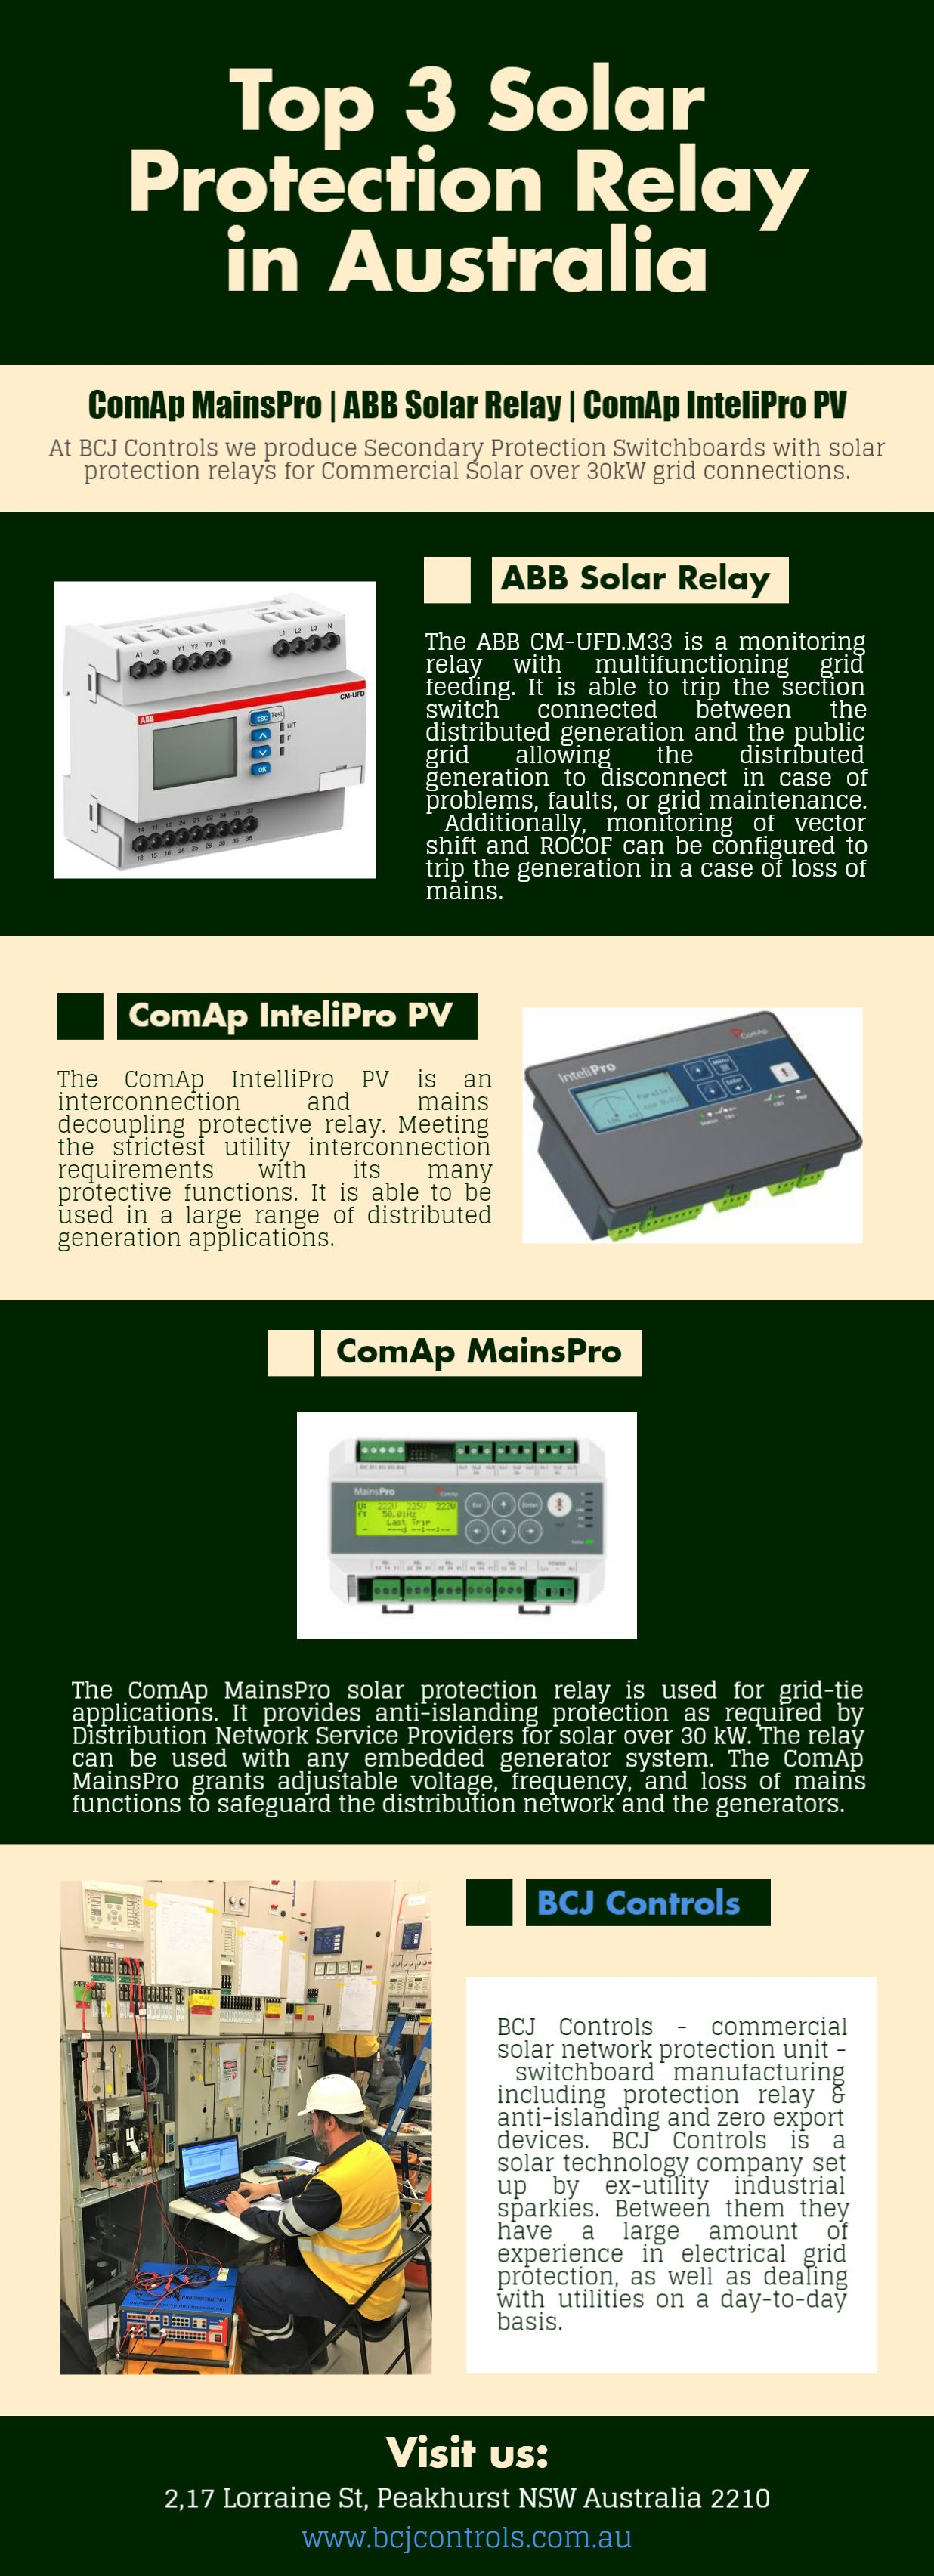 Pin By Daniel Pratt On Comap Intelipro Intellipro Zero Relay Switch For Solar Export Pinterest And Safety